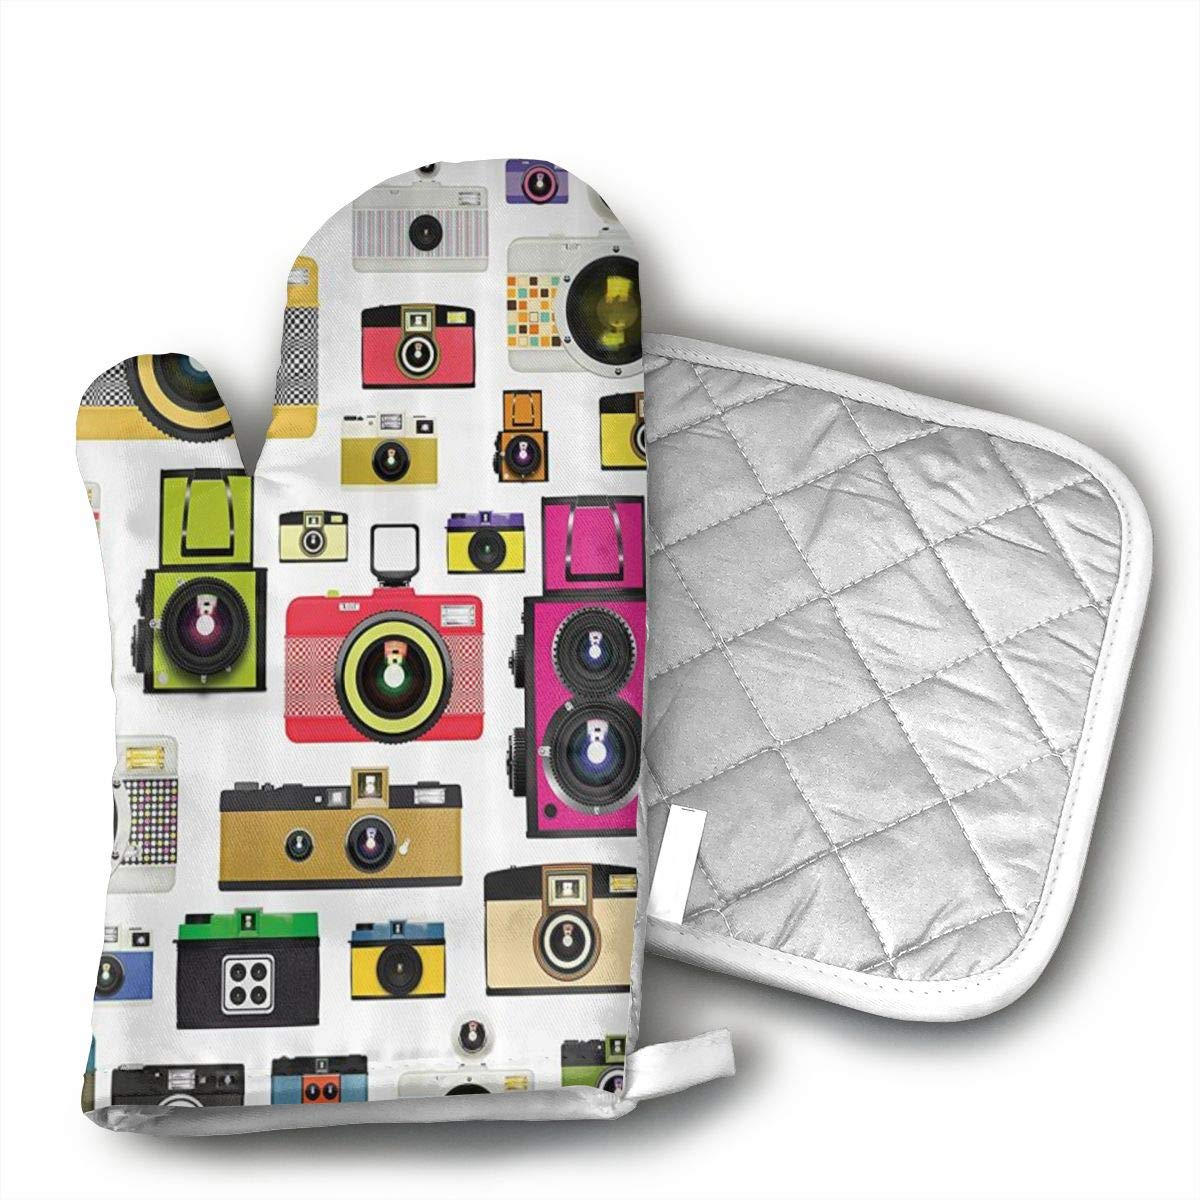 WODHGG Photographic Camera Oven mitt Pot Holder for Kitchen, Cooking, Baking, Barbecue